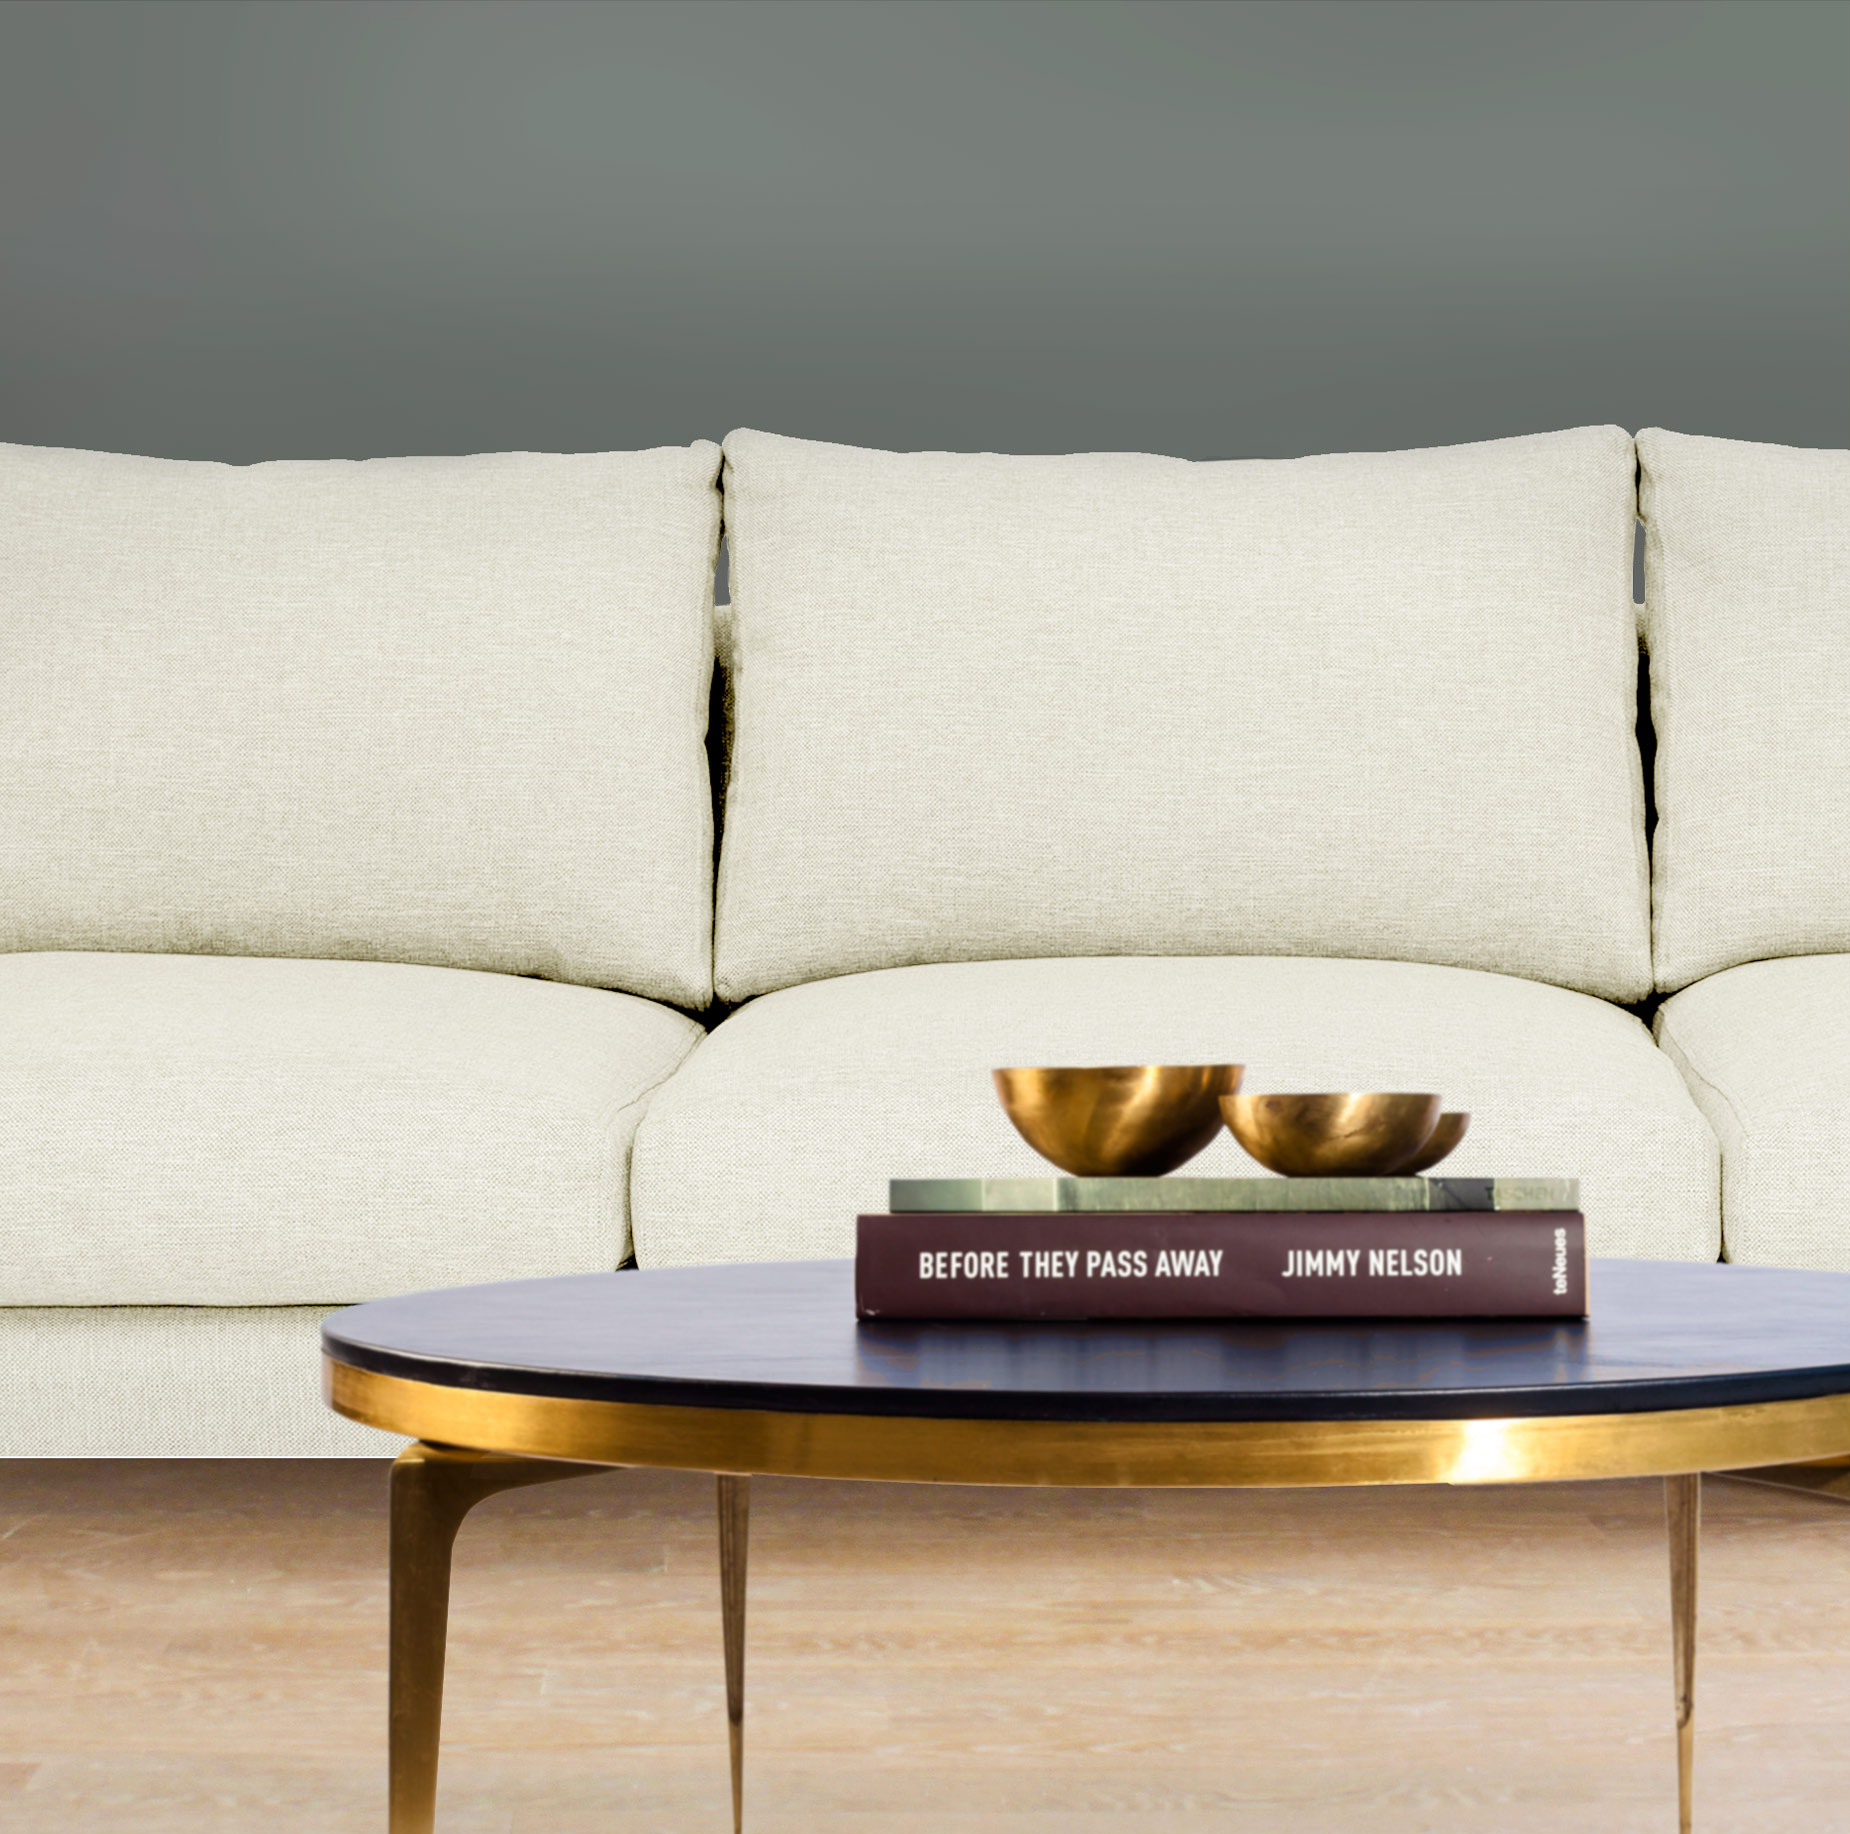 Revitaliste transformed the Brass Coffee Table with a blue leather top.